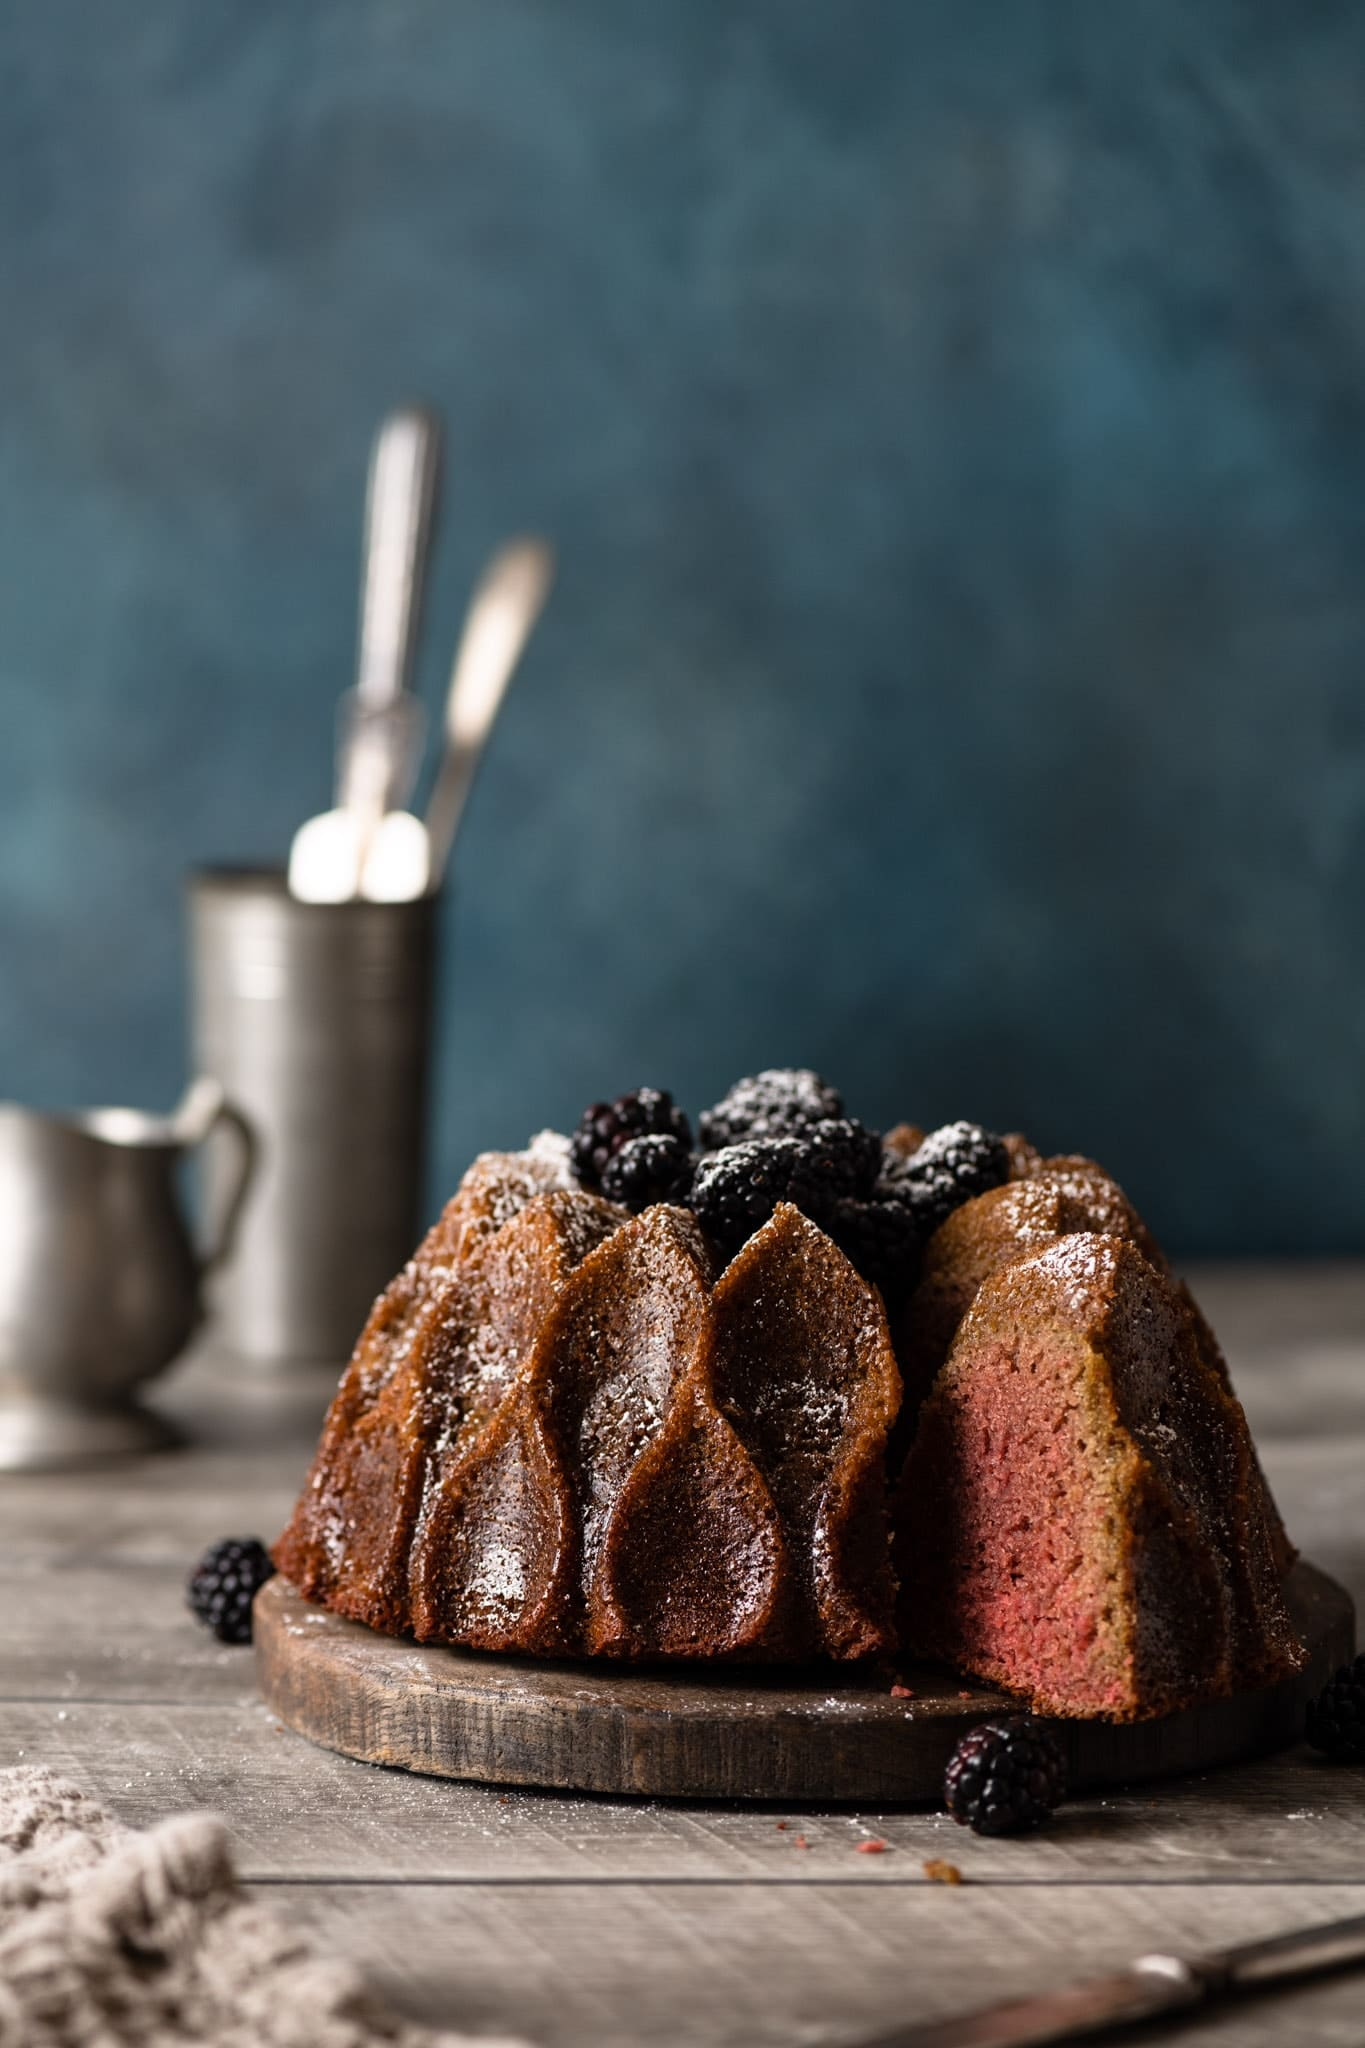 Homemade blackberry wine cake sliced with powdered sugar.